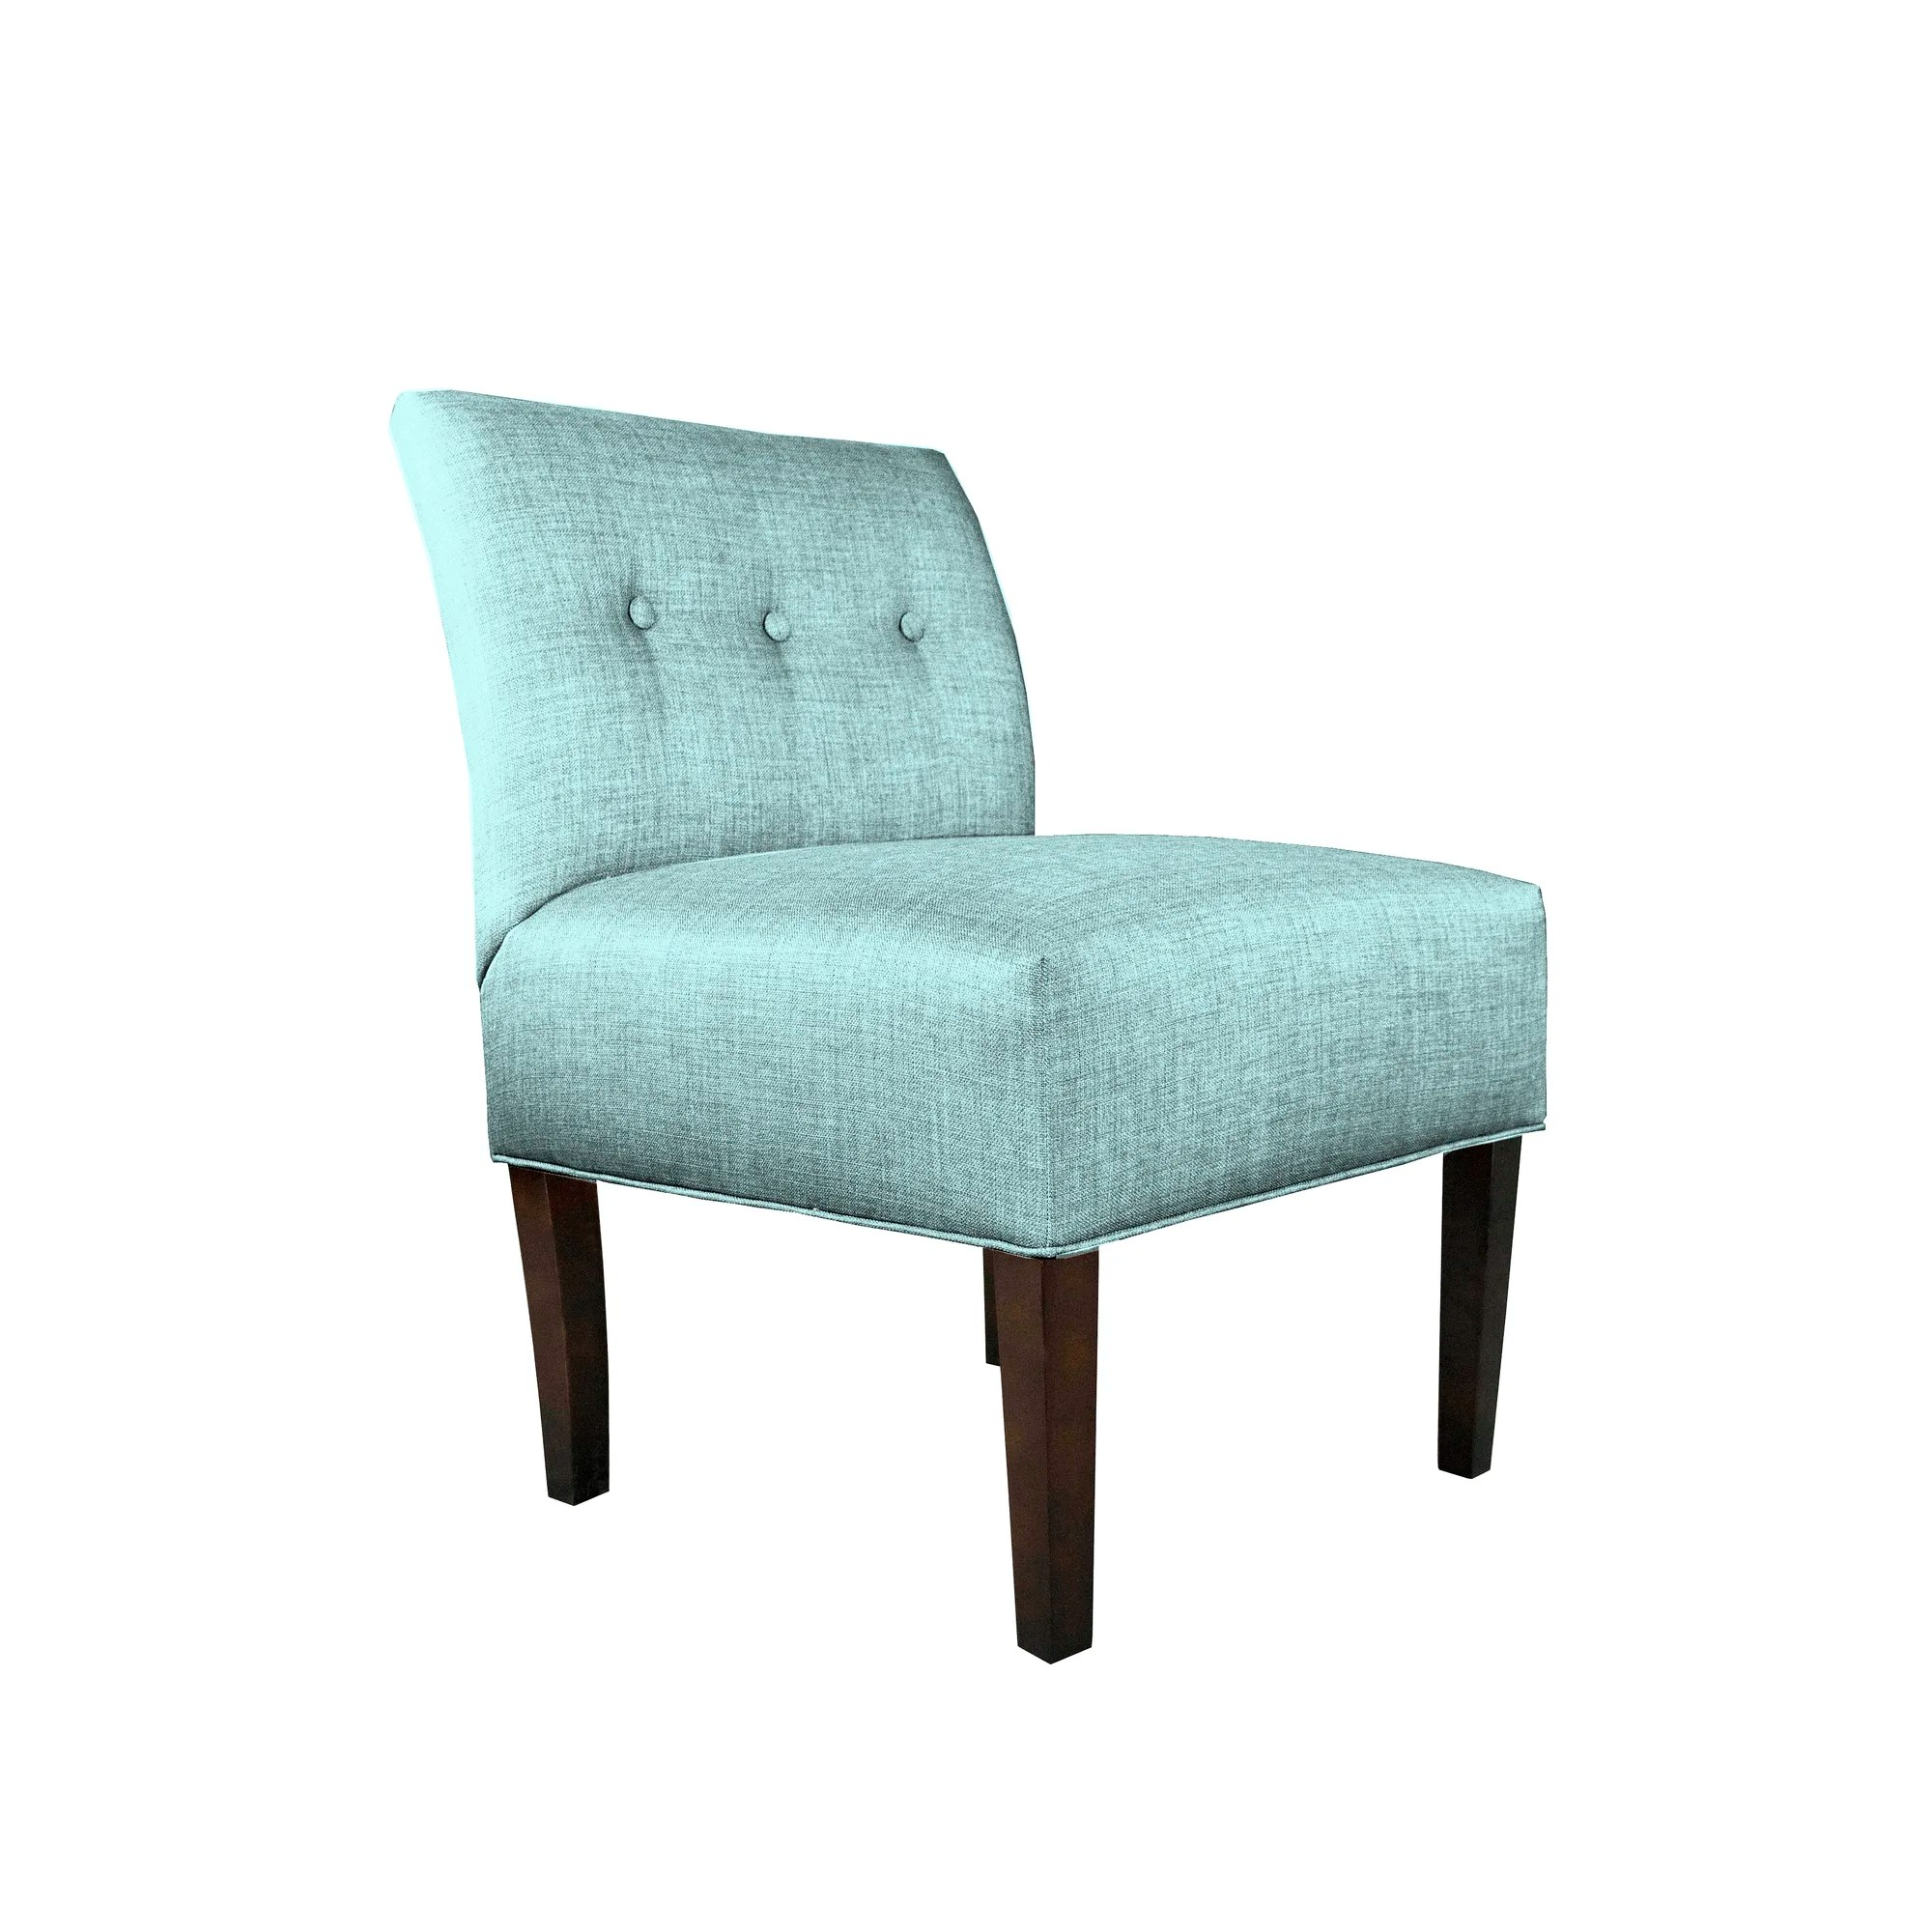 Tufted Slipper Chair Mjlfurniture Samantha Button Tufted Slipper Chair Wayfair Ca